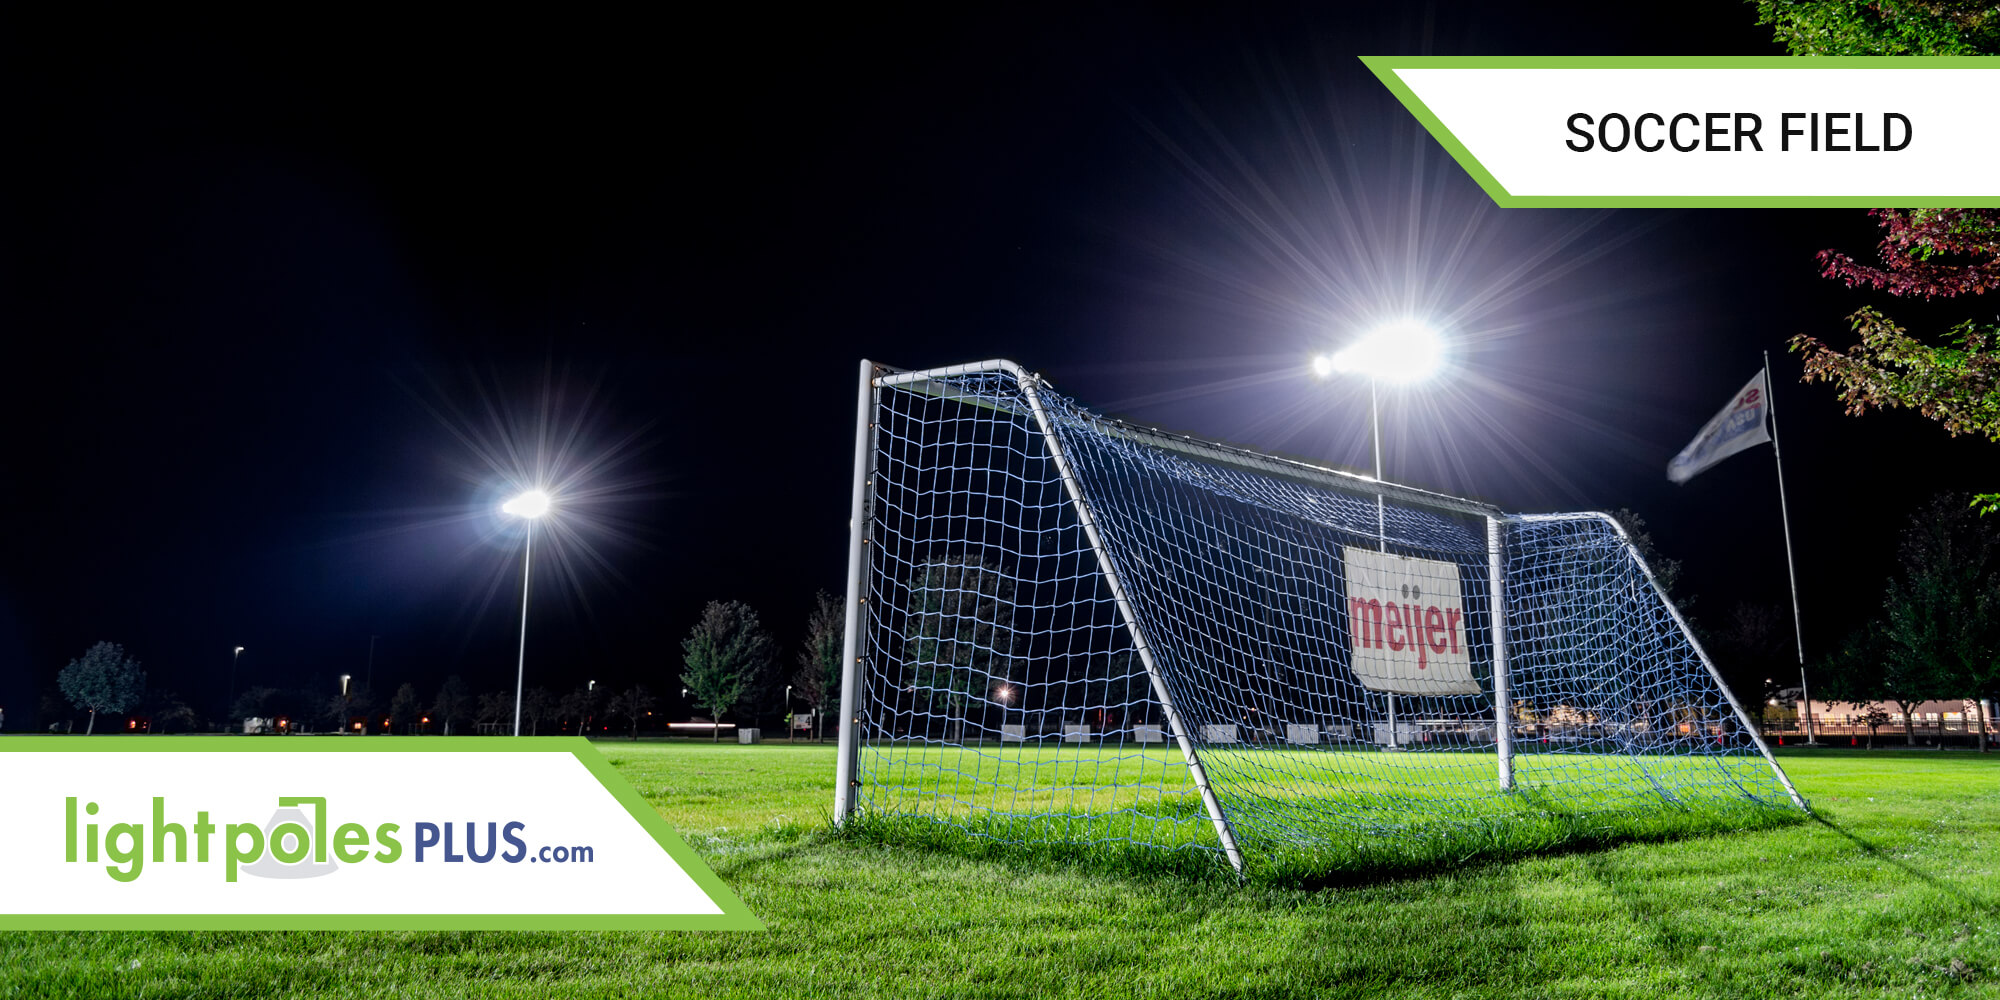 Soccer Field LED Lighting and Light Pole Project